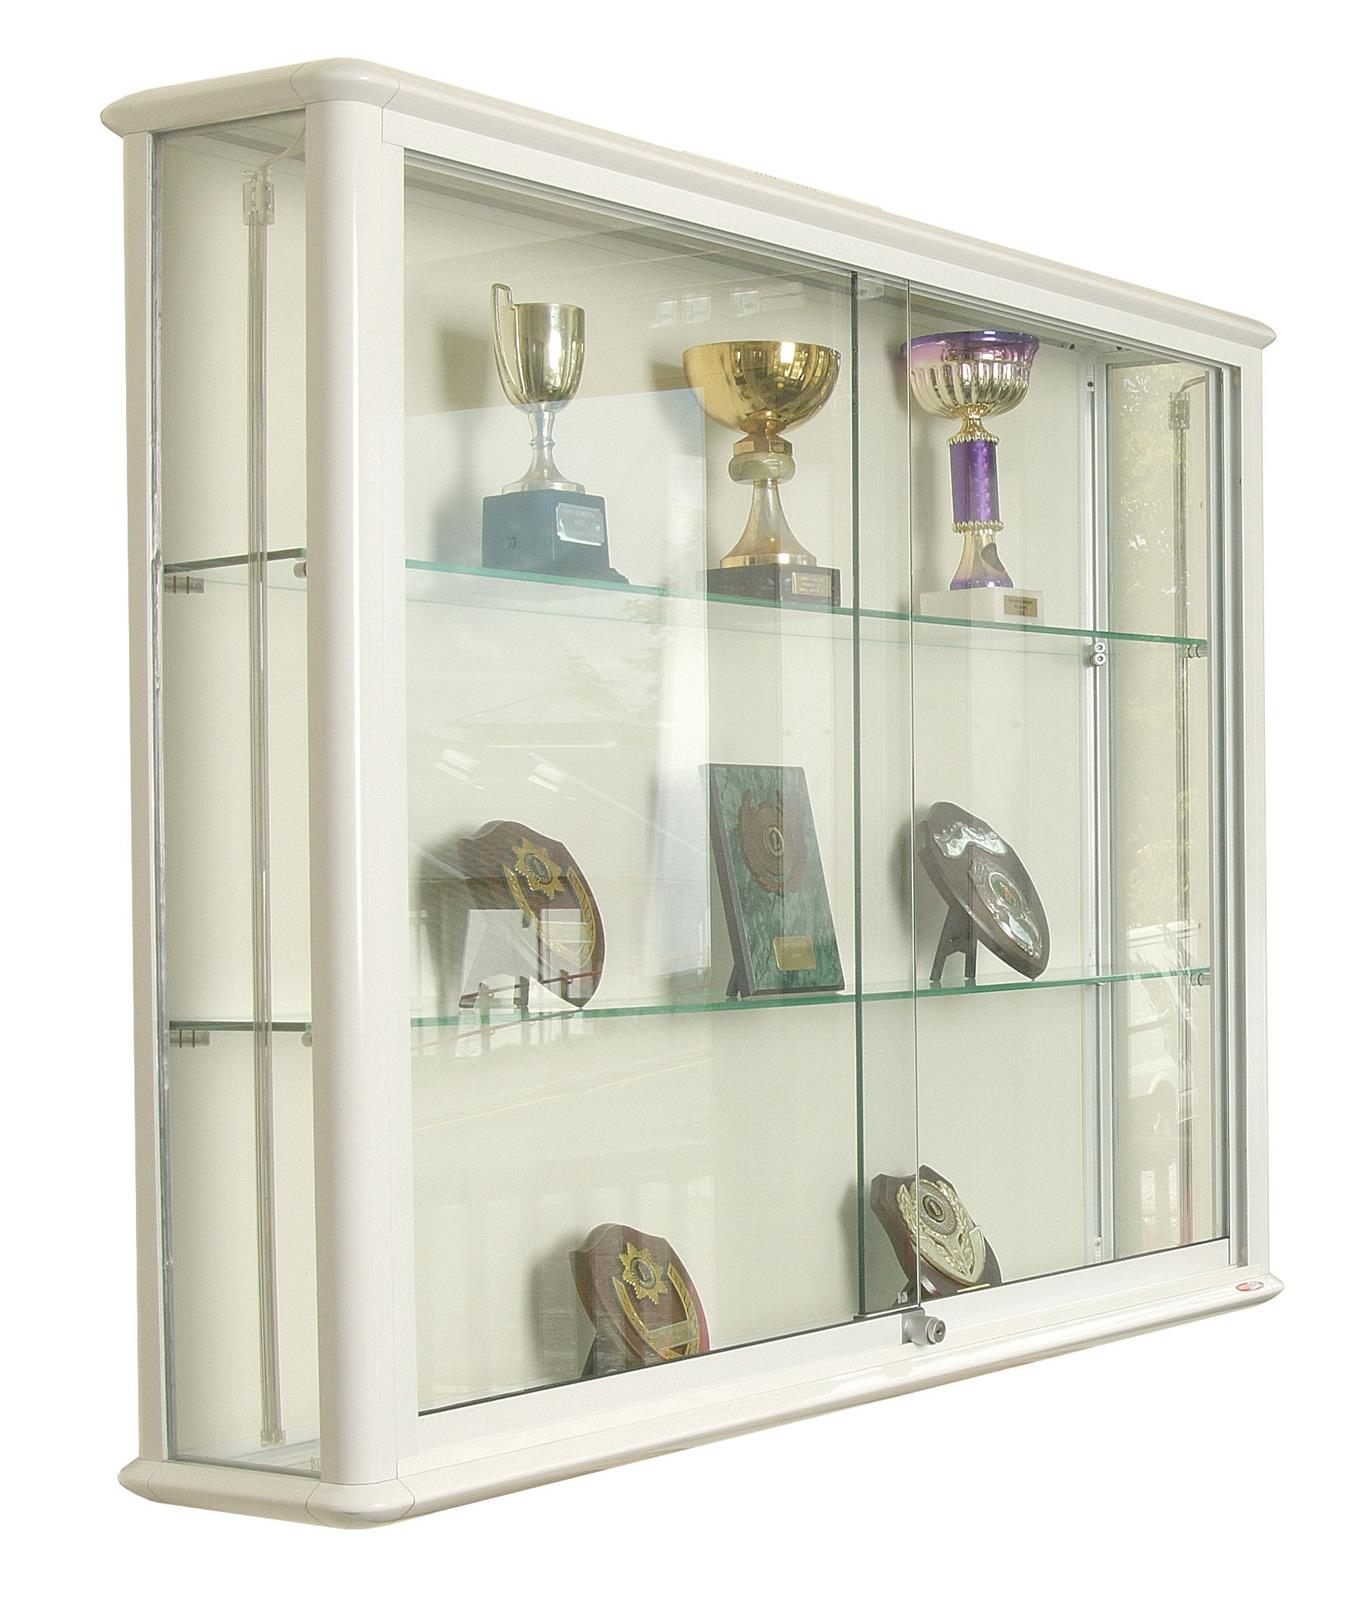 Shield Glazed Wall Display Cases